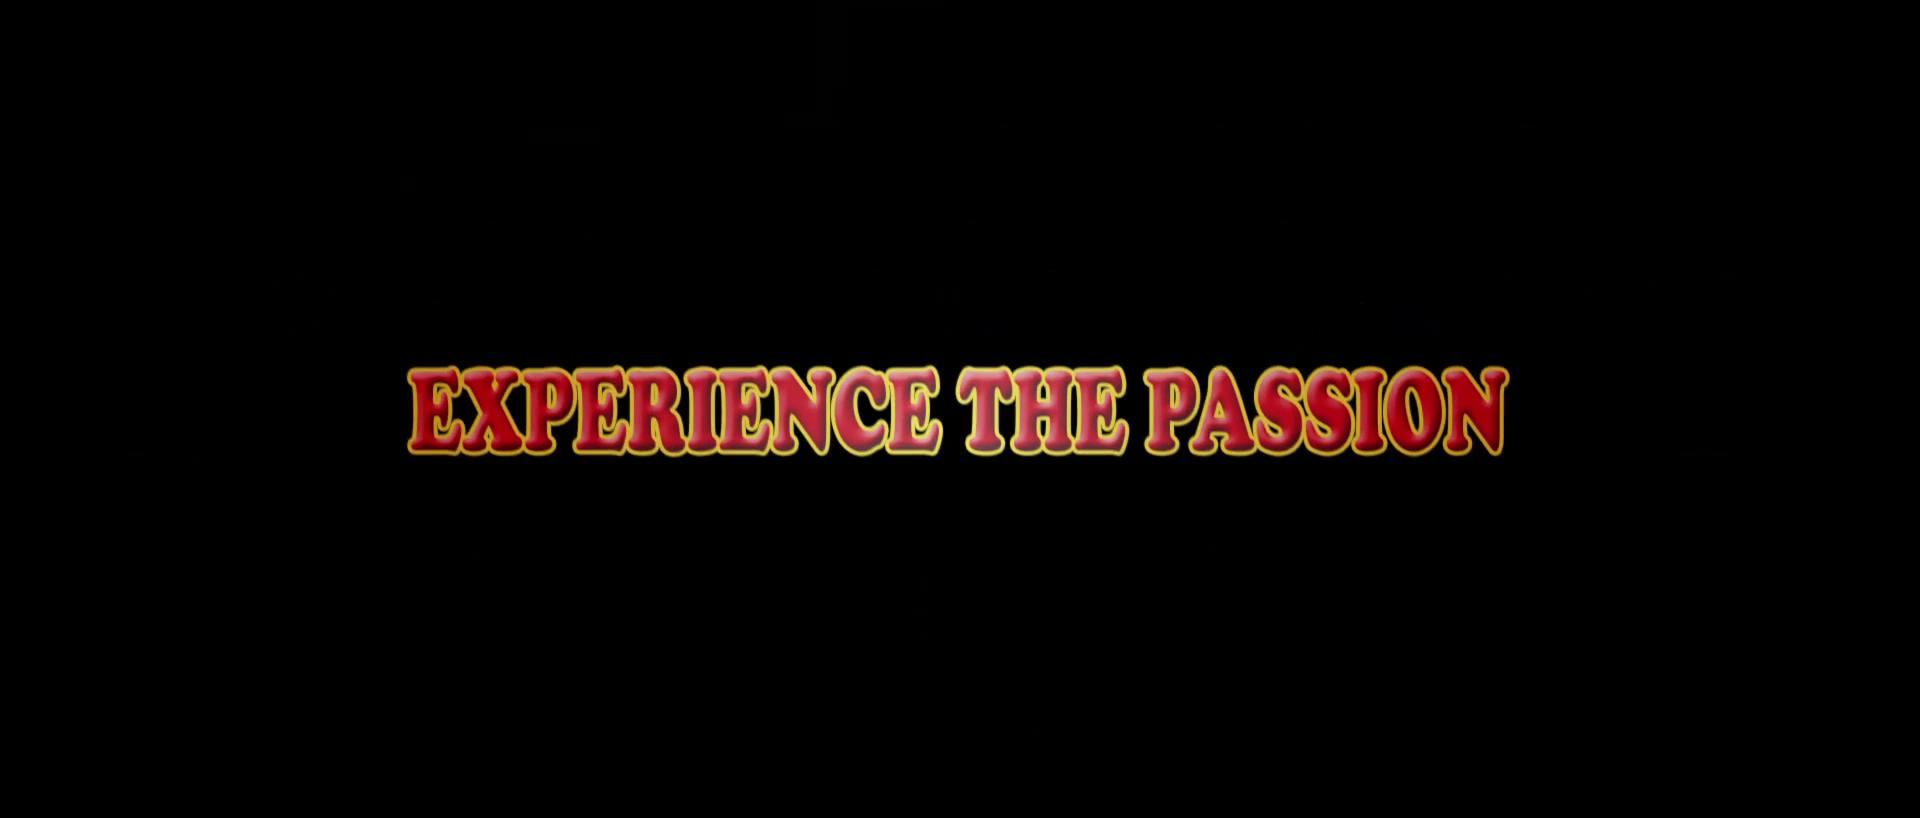 rfmt-54-experience-the-passion